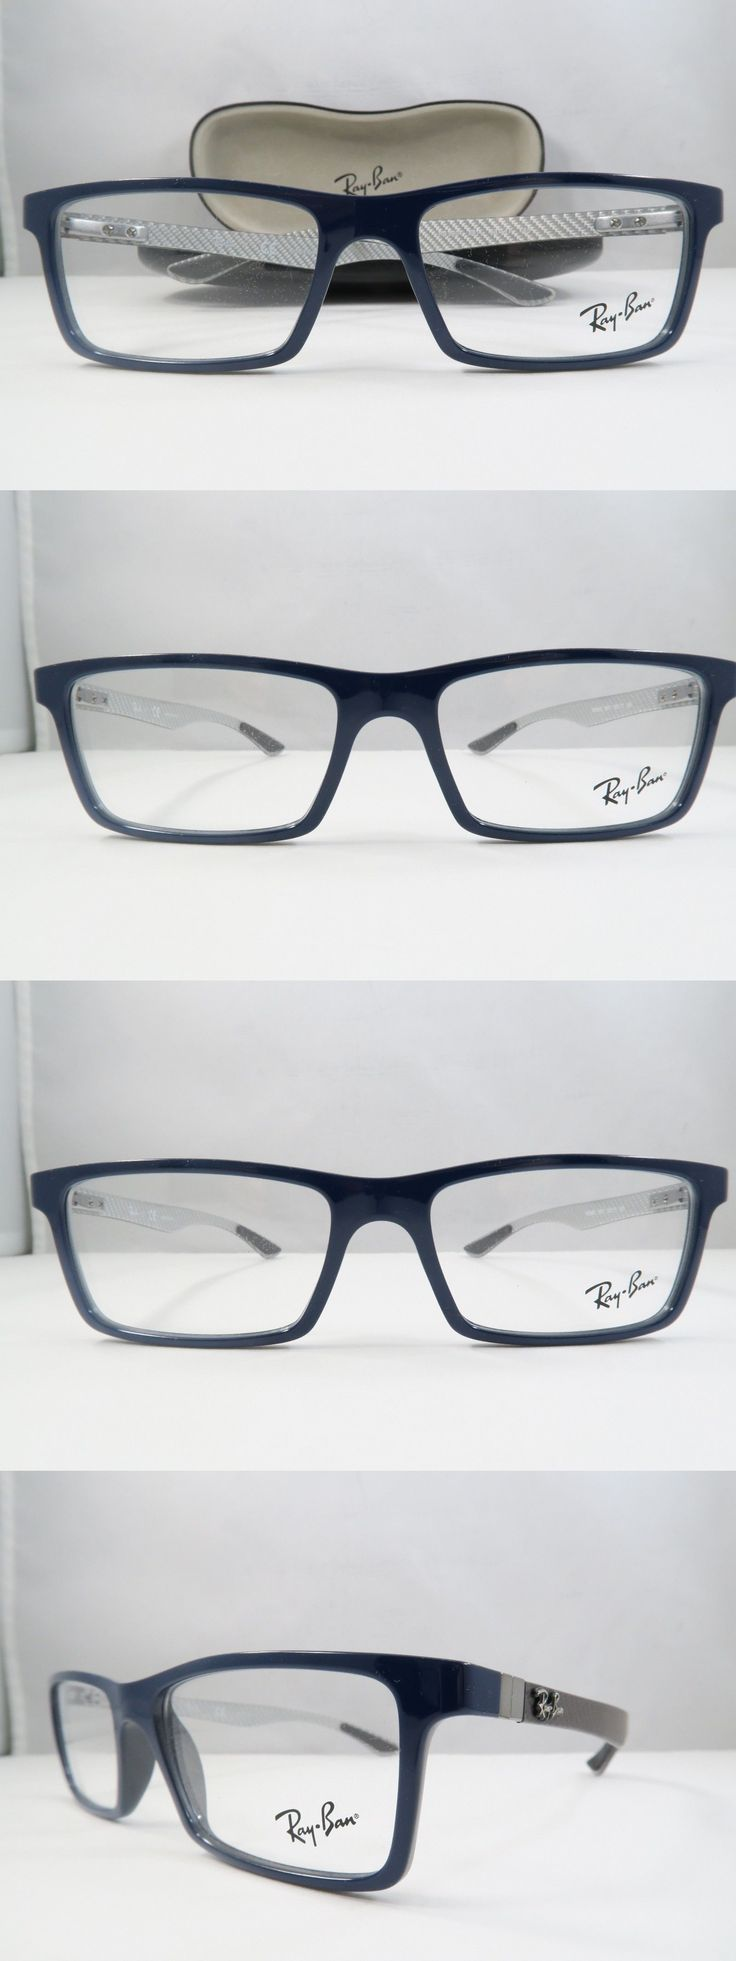 Eyeglass Frames: Ray-Ban Rb 8901 5611 Shiny Blue Carbon Fibre New Authentic Eyeglasses 53Mm Case -> BUY IT NOW ONLY: $77.34 on eBay!